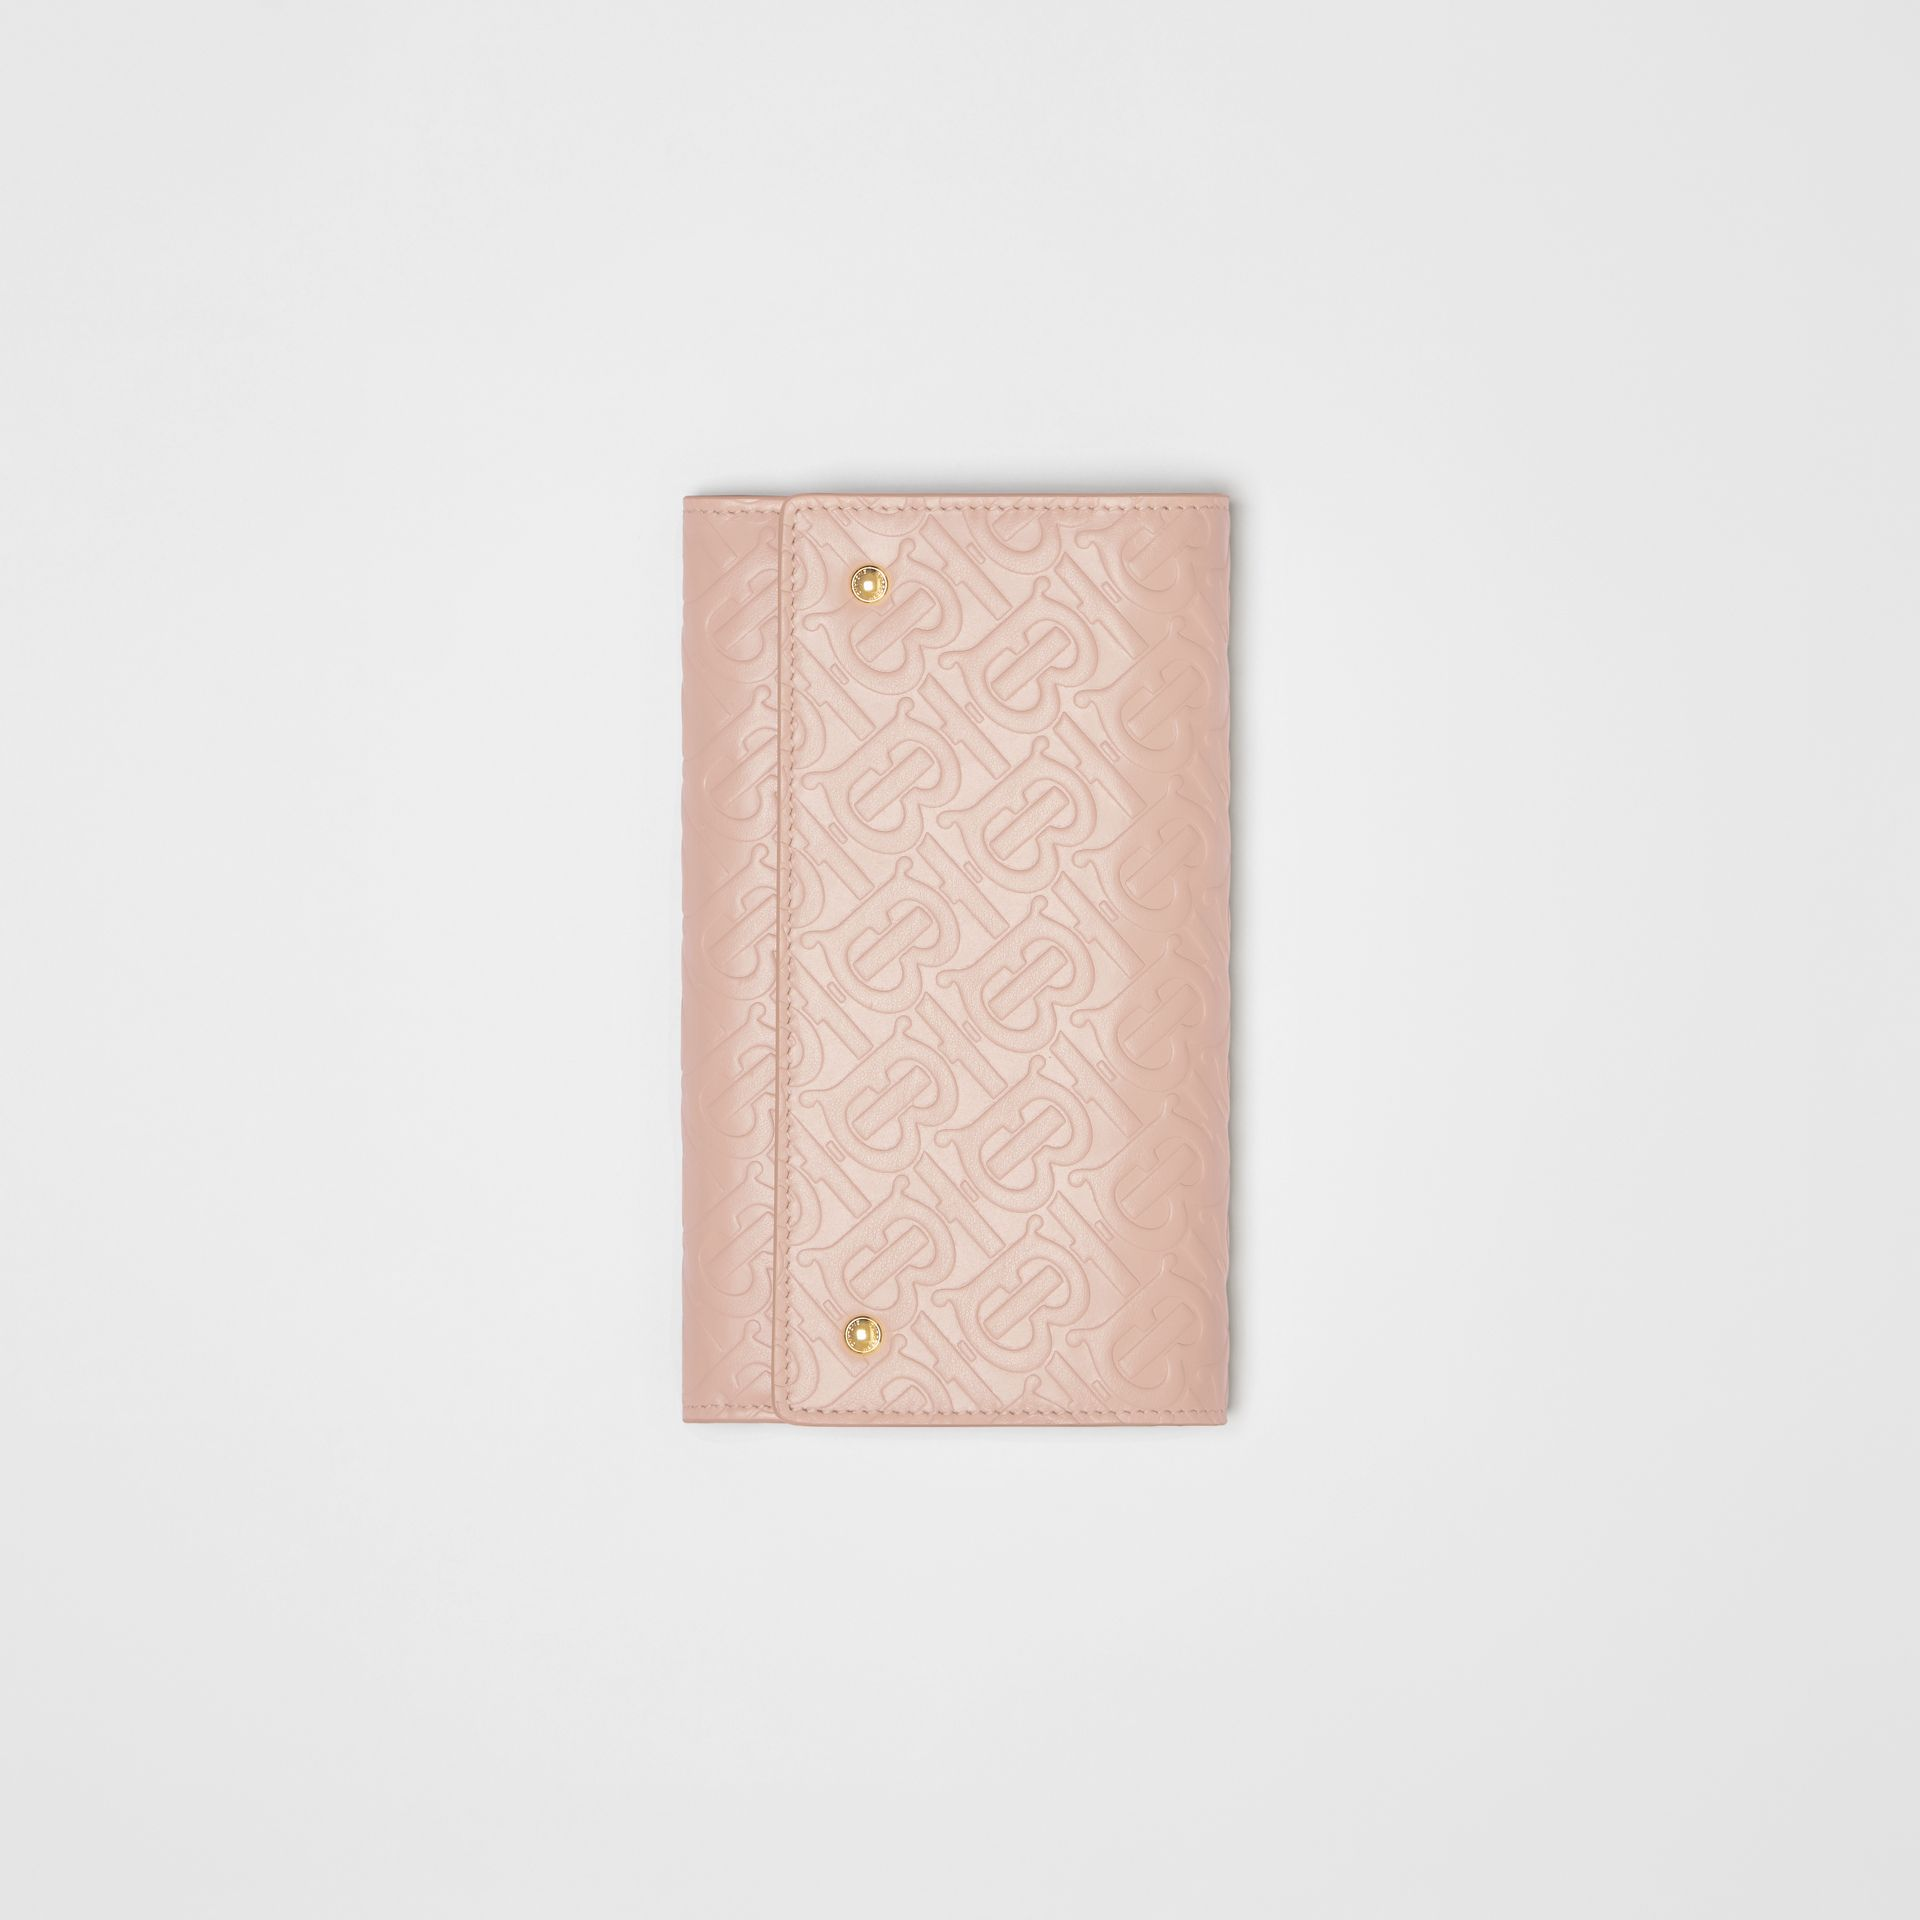 Monogram Leather Wallet with Detachable Strap in Rose Beige - Women | Burberry - gallery image 4